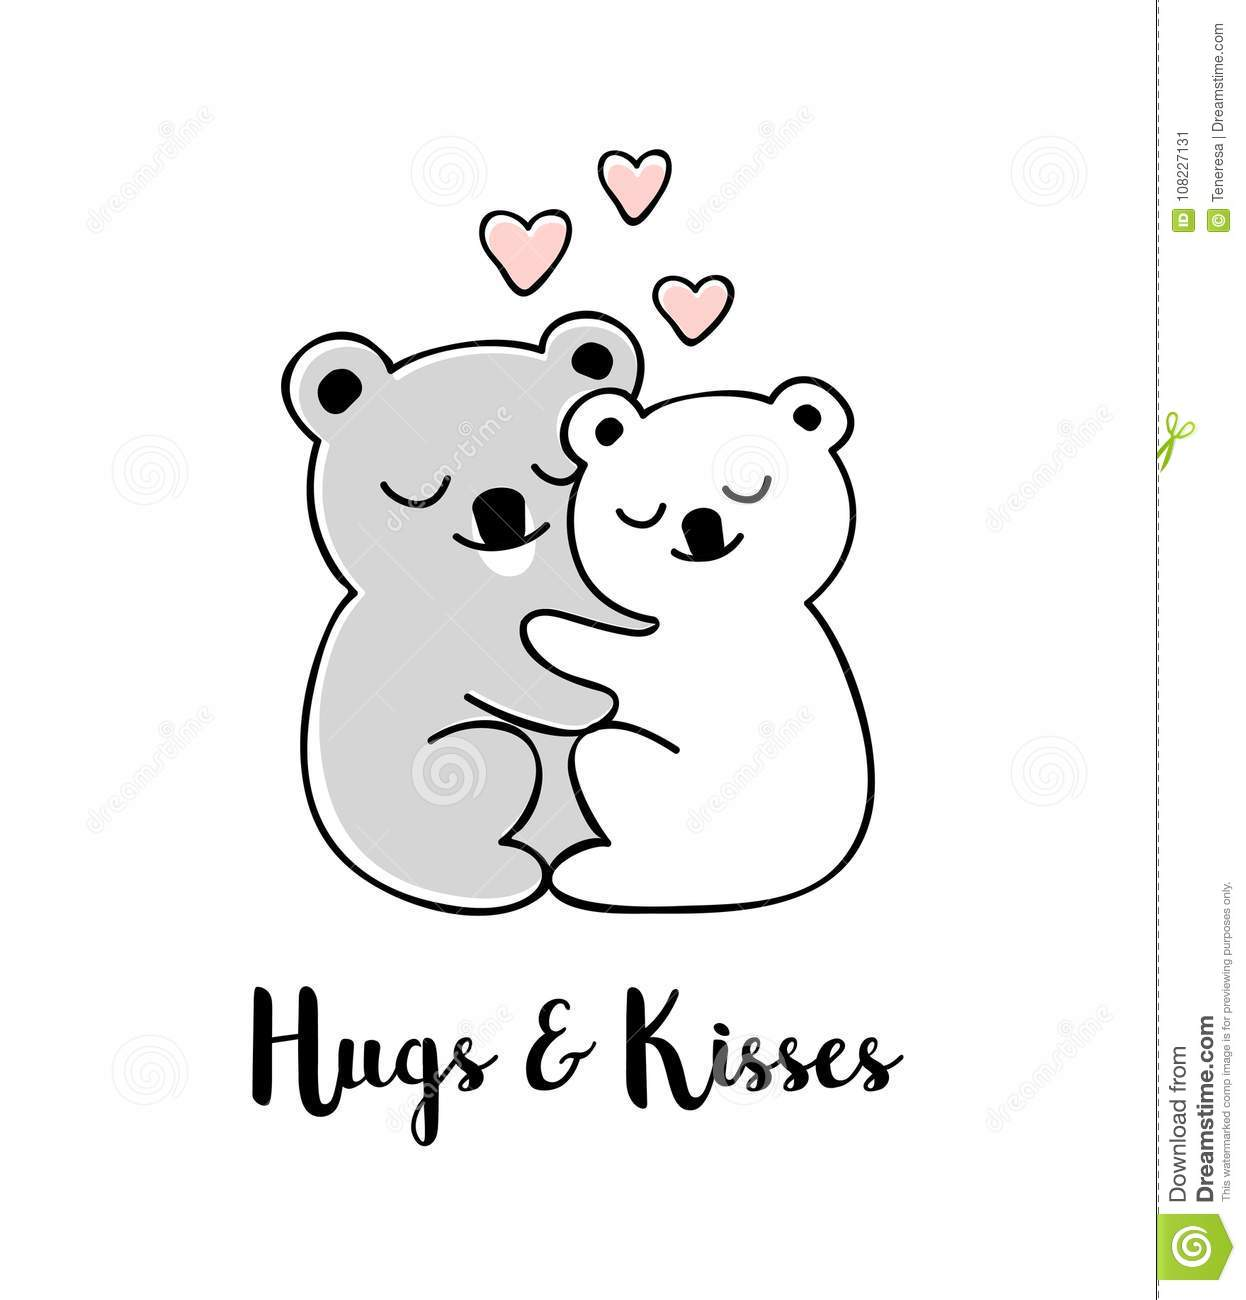 Hugs and kisses hand drawn greeting card with valentines day quote download hugs and kisses hand drawn greeting card with valentines day quote stock vector m4hsunfo